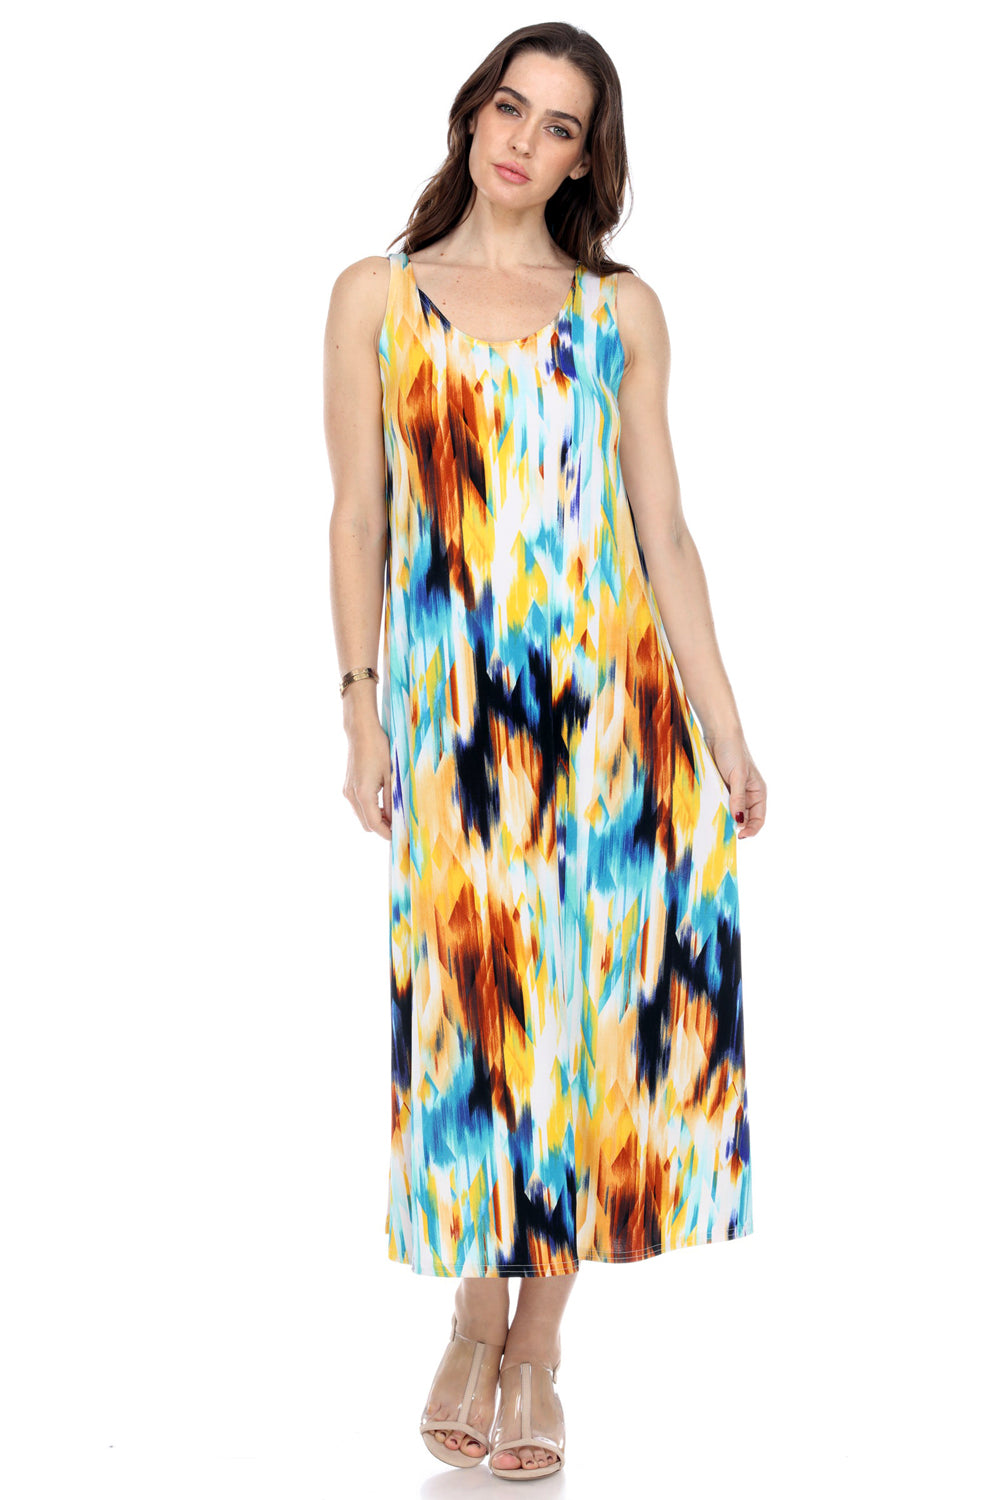 Jostar Women's Stretchy Long Tank Dress Print, 700BN-TP-W250 - Jostar Online